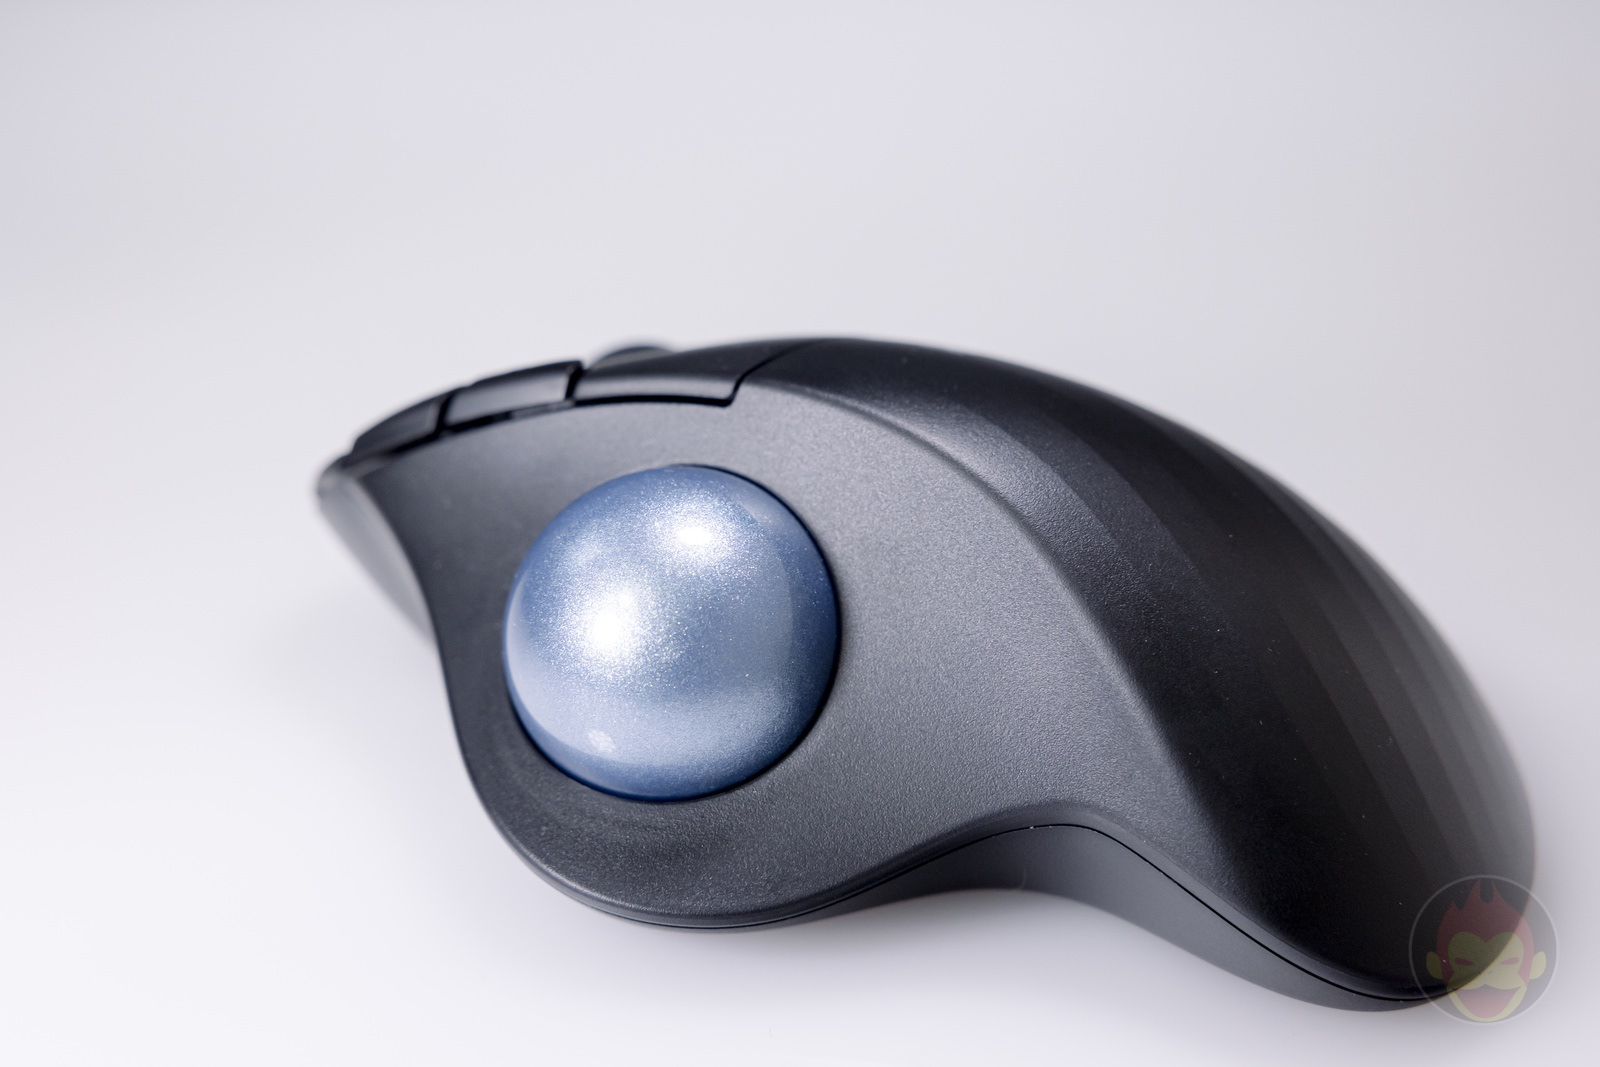 Logicool-ERGO-M575S-Trackball-Hands-on-07.jpg